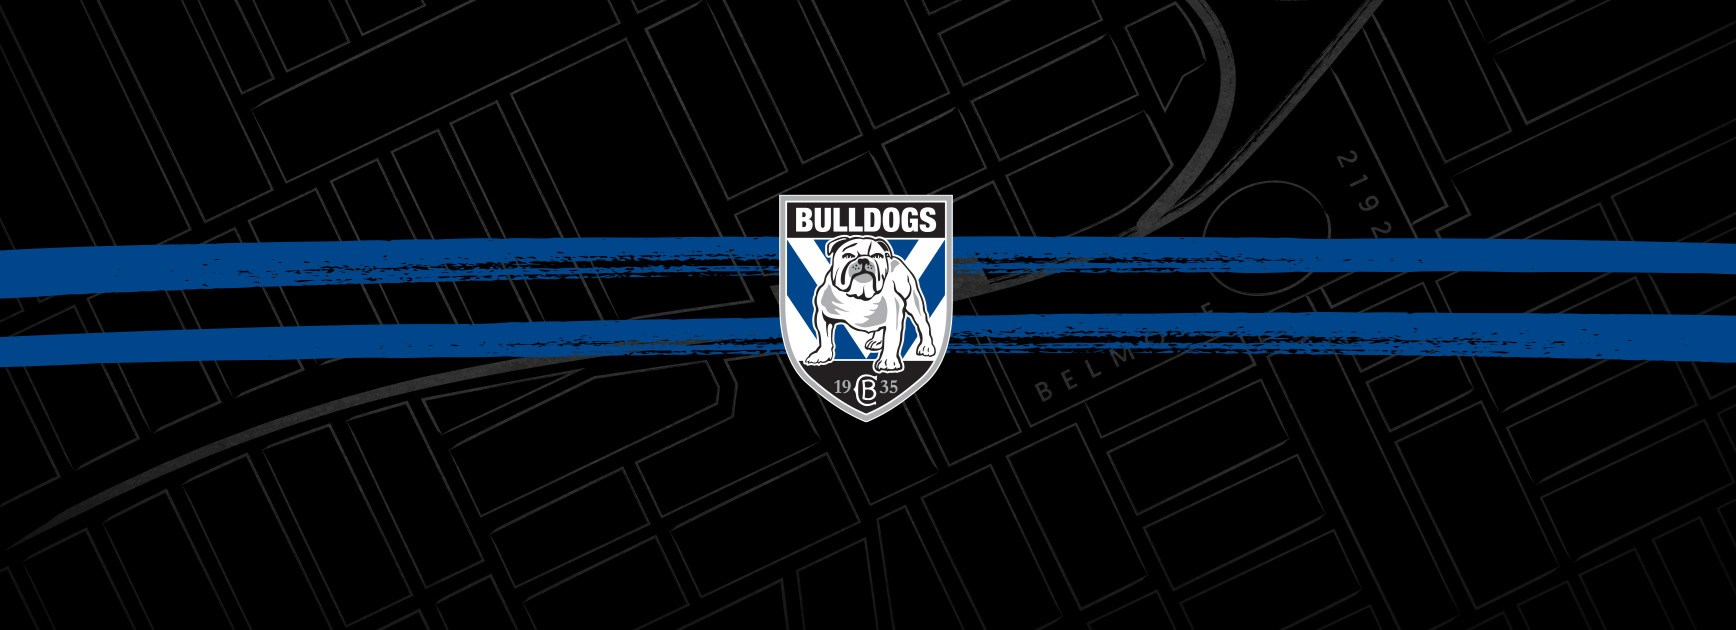 Bulldogs statement on Corey Harawira-Naera and Jayden Okunbor